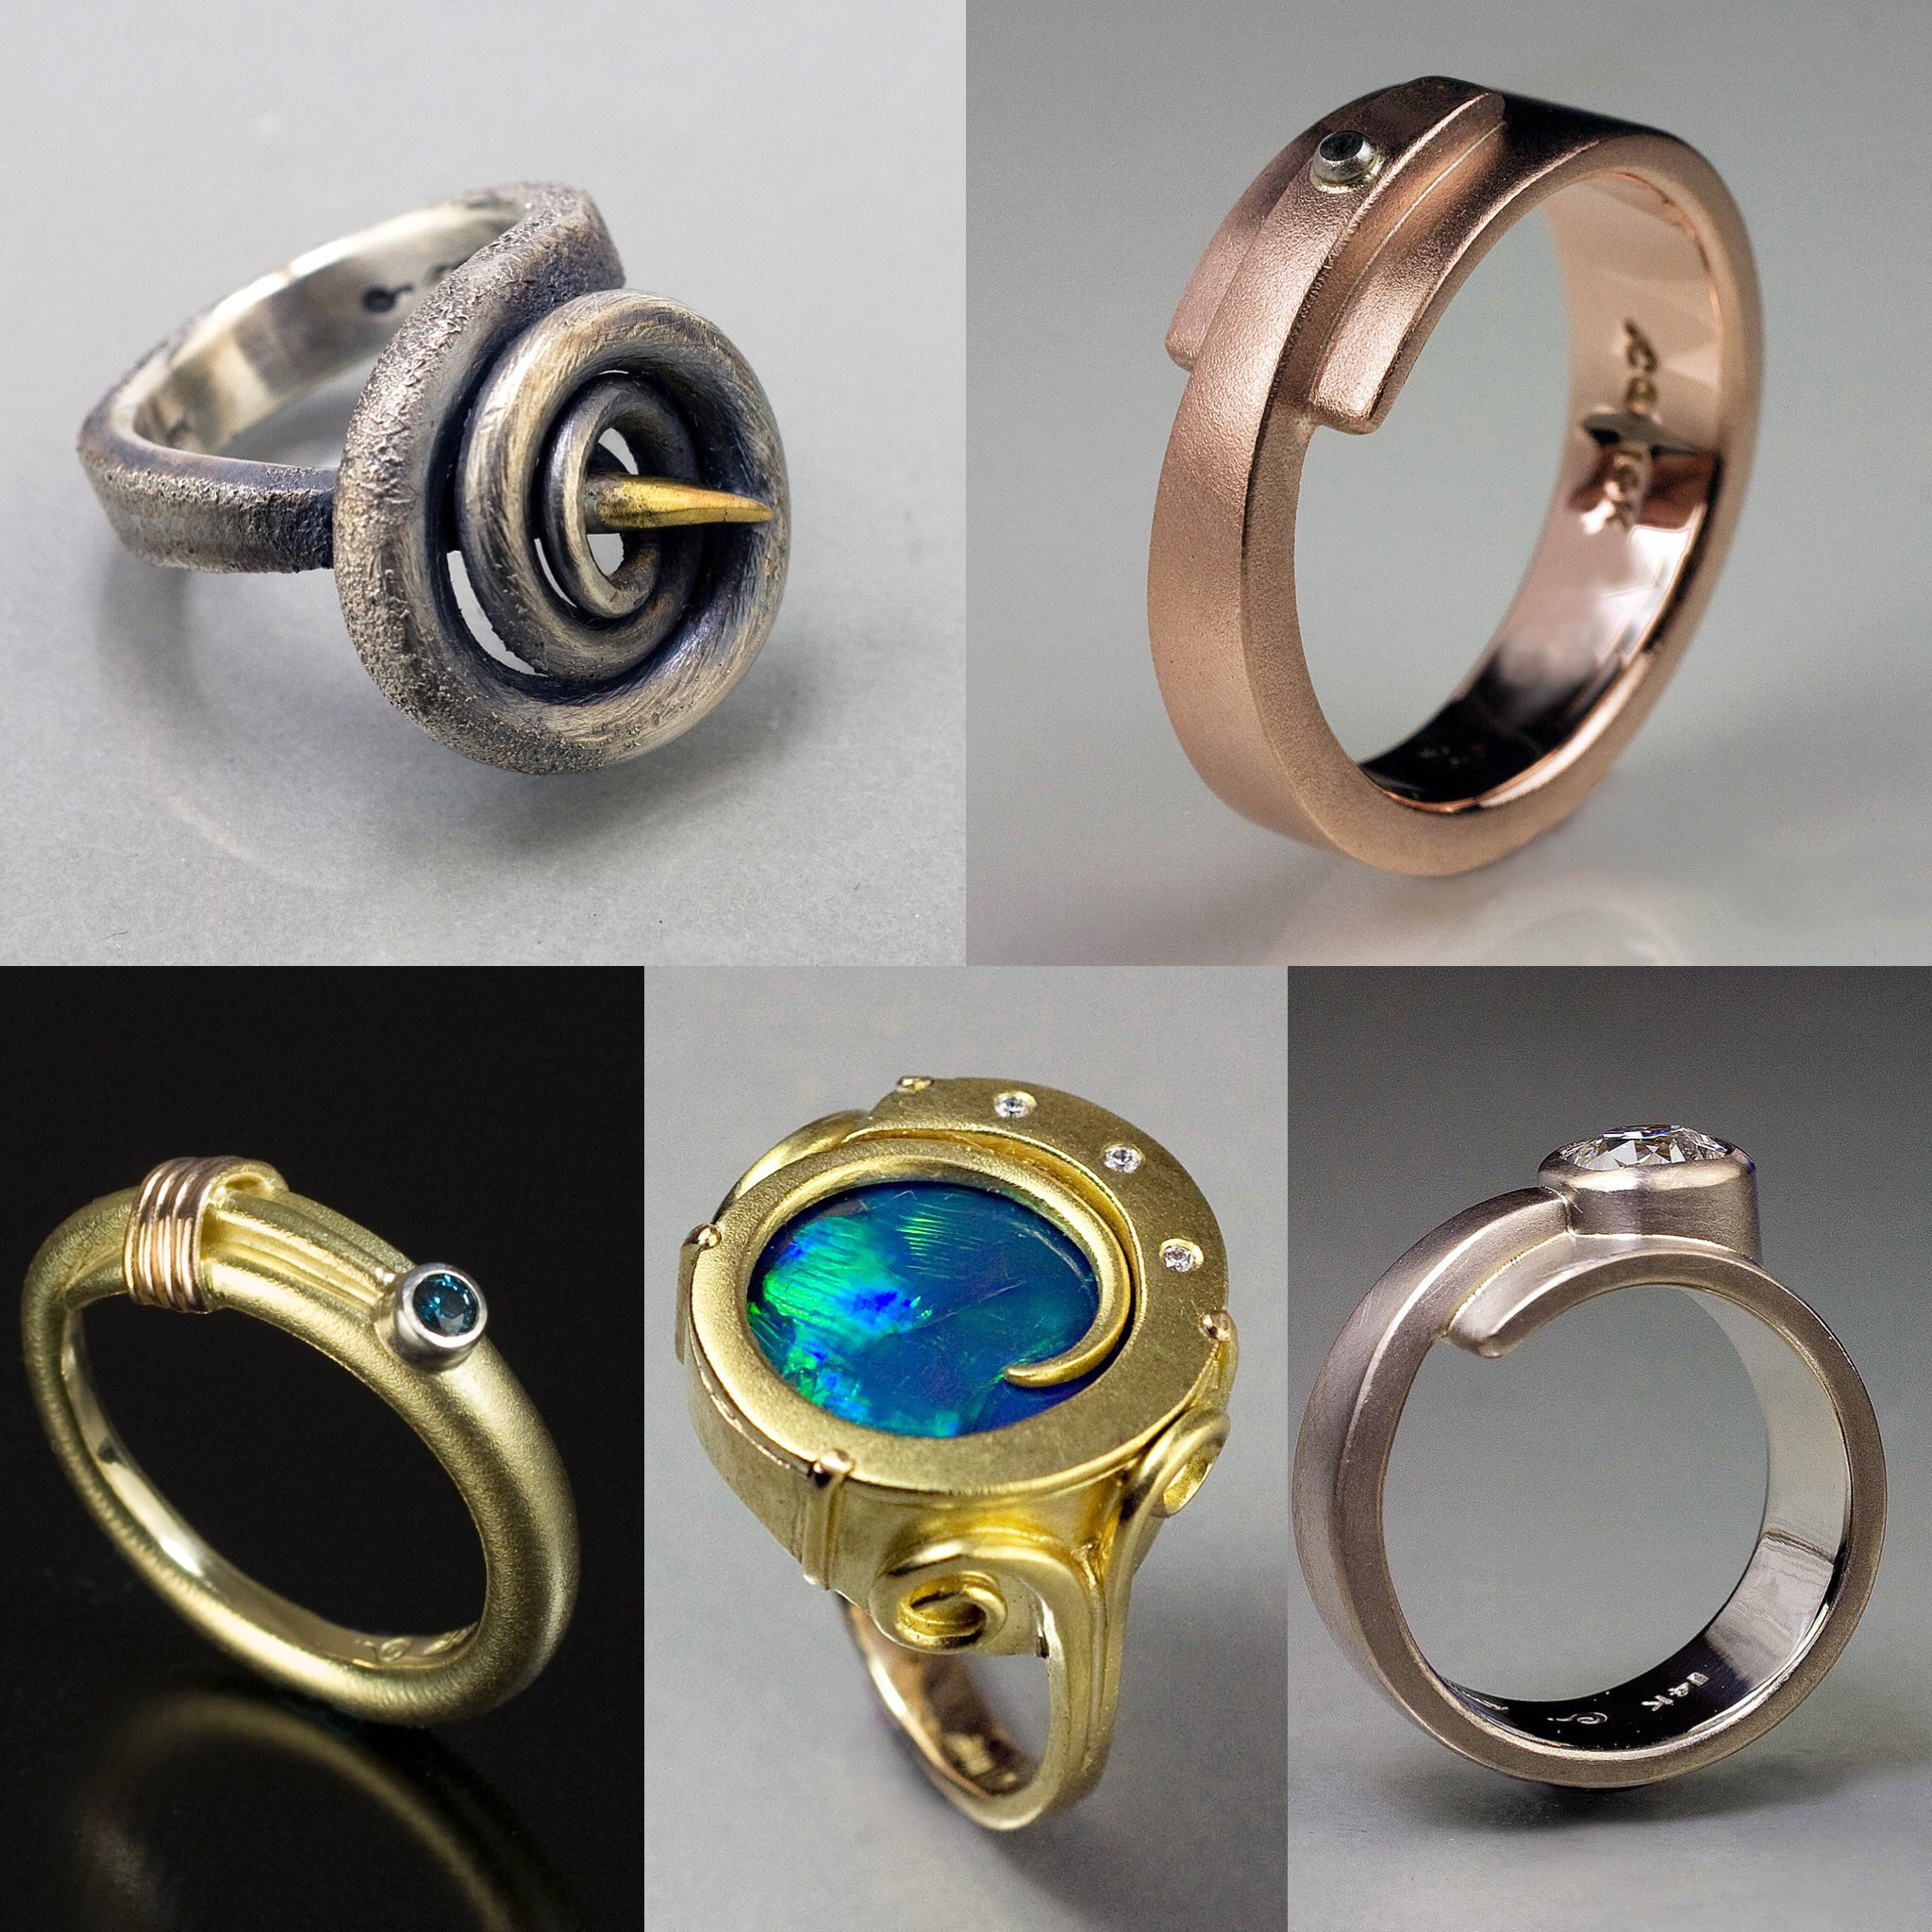 BBFR, Andy Cooperman, ring, rings, jewlery